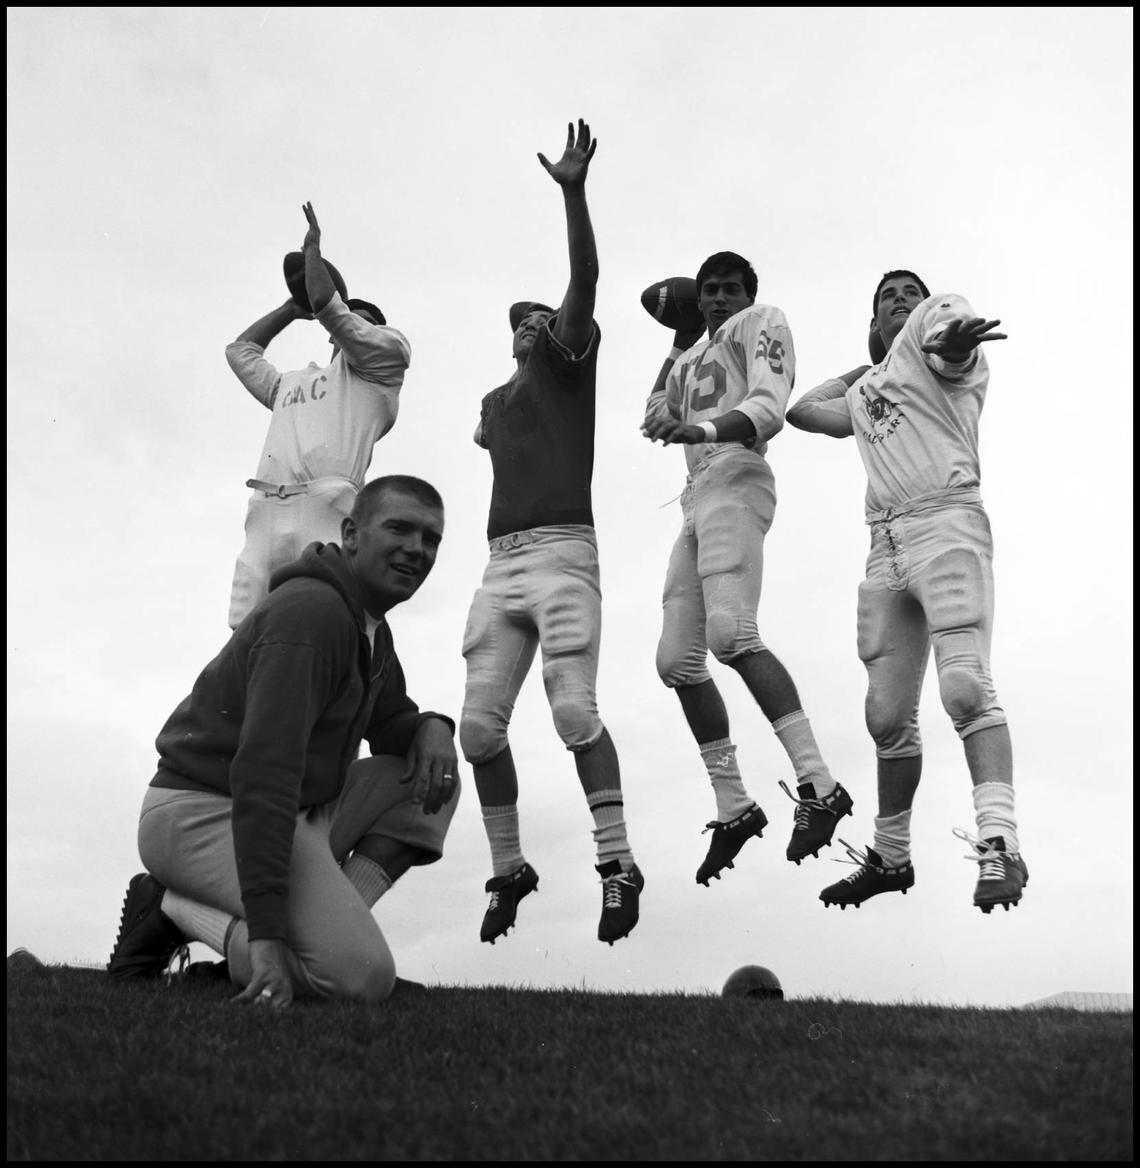 Coach Kadatz evaluates four players for the quarterback role in the 1960s.